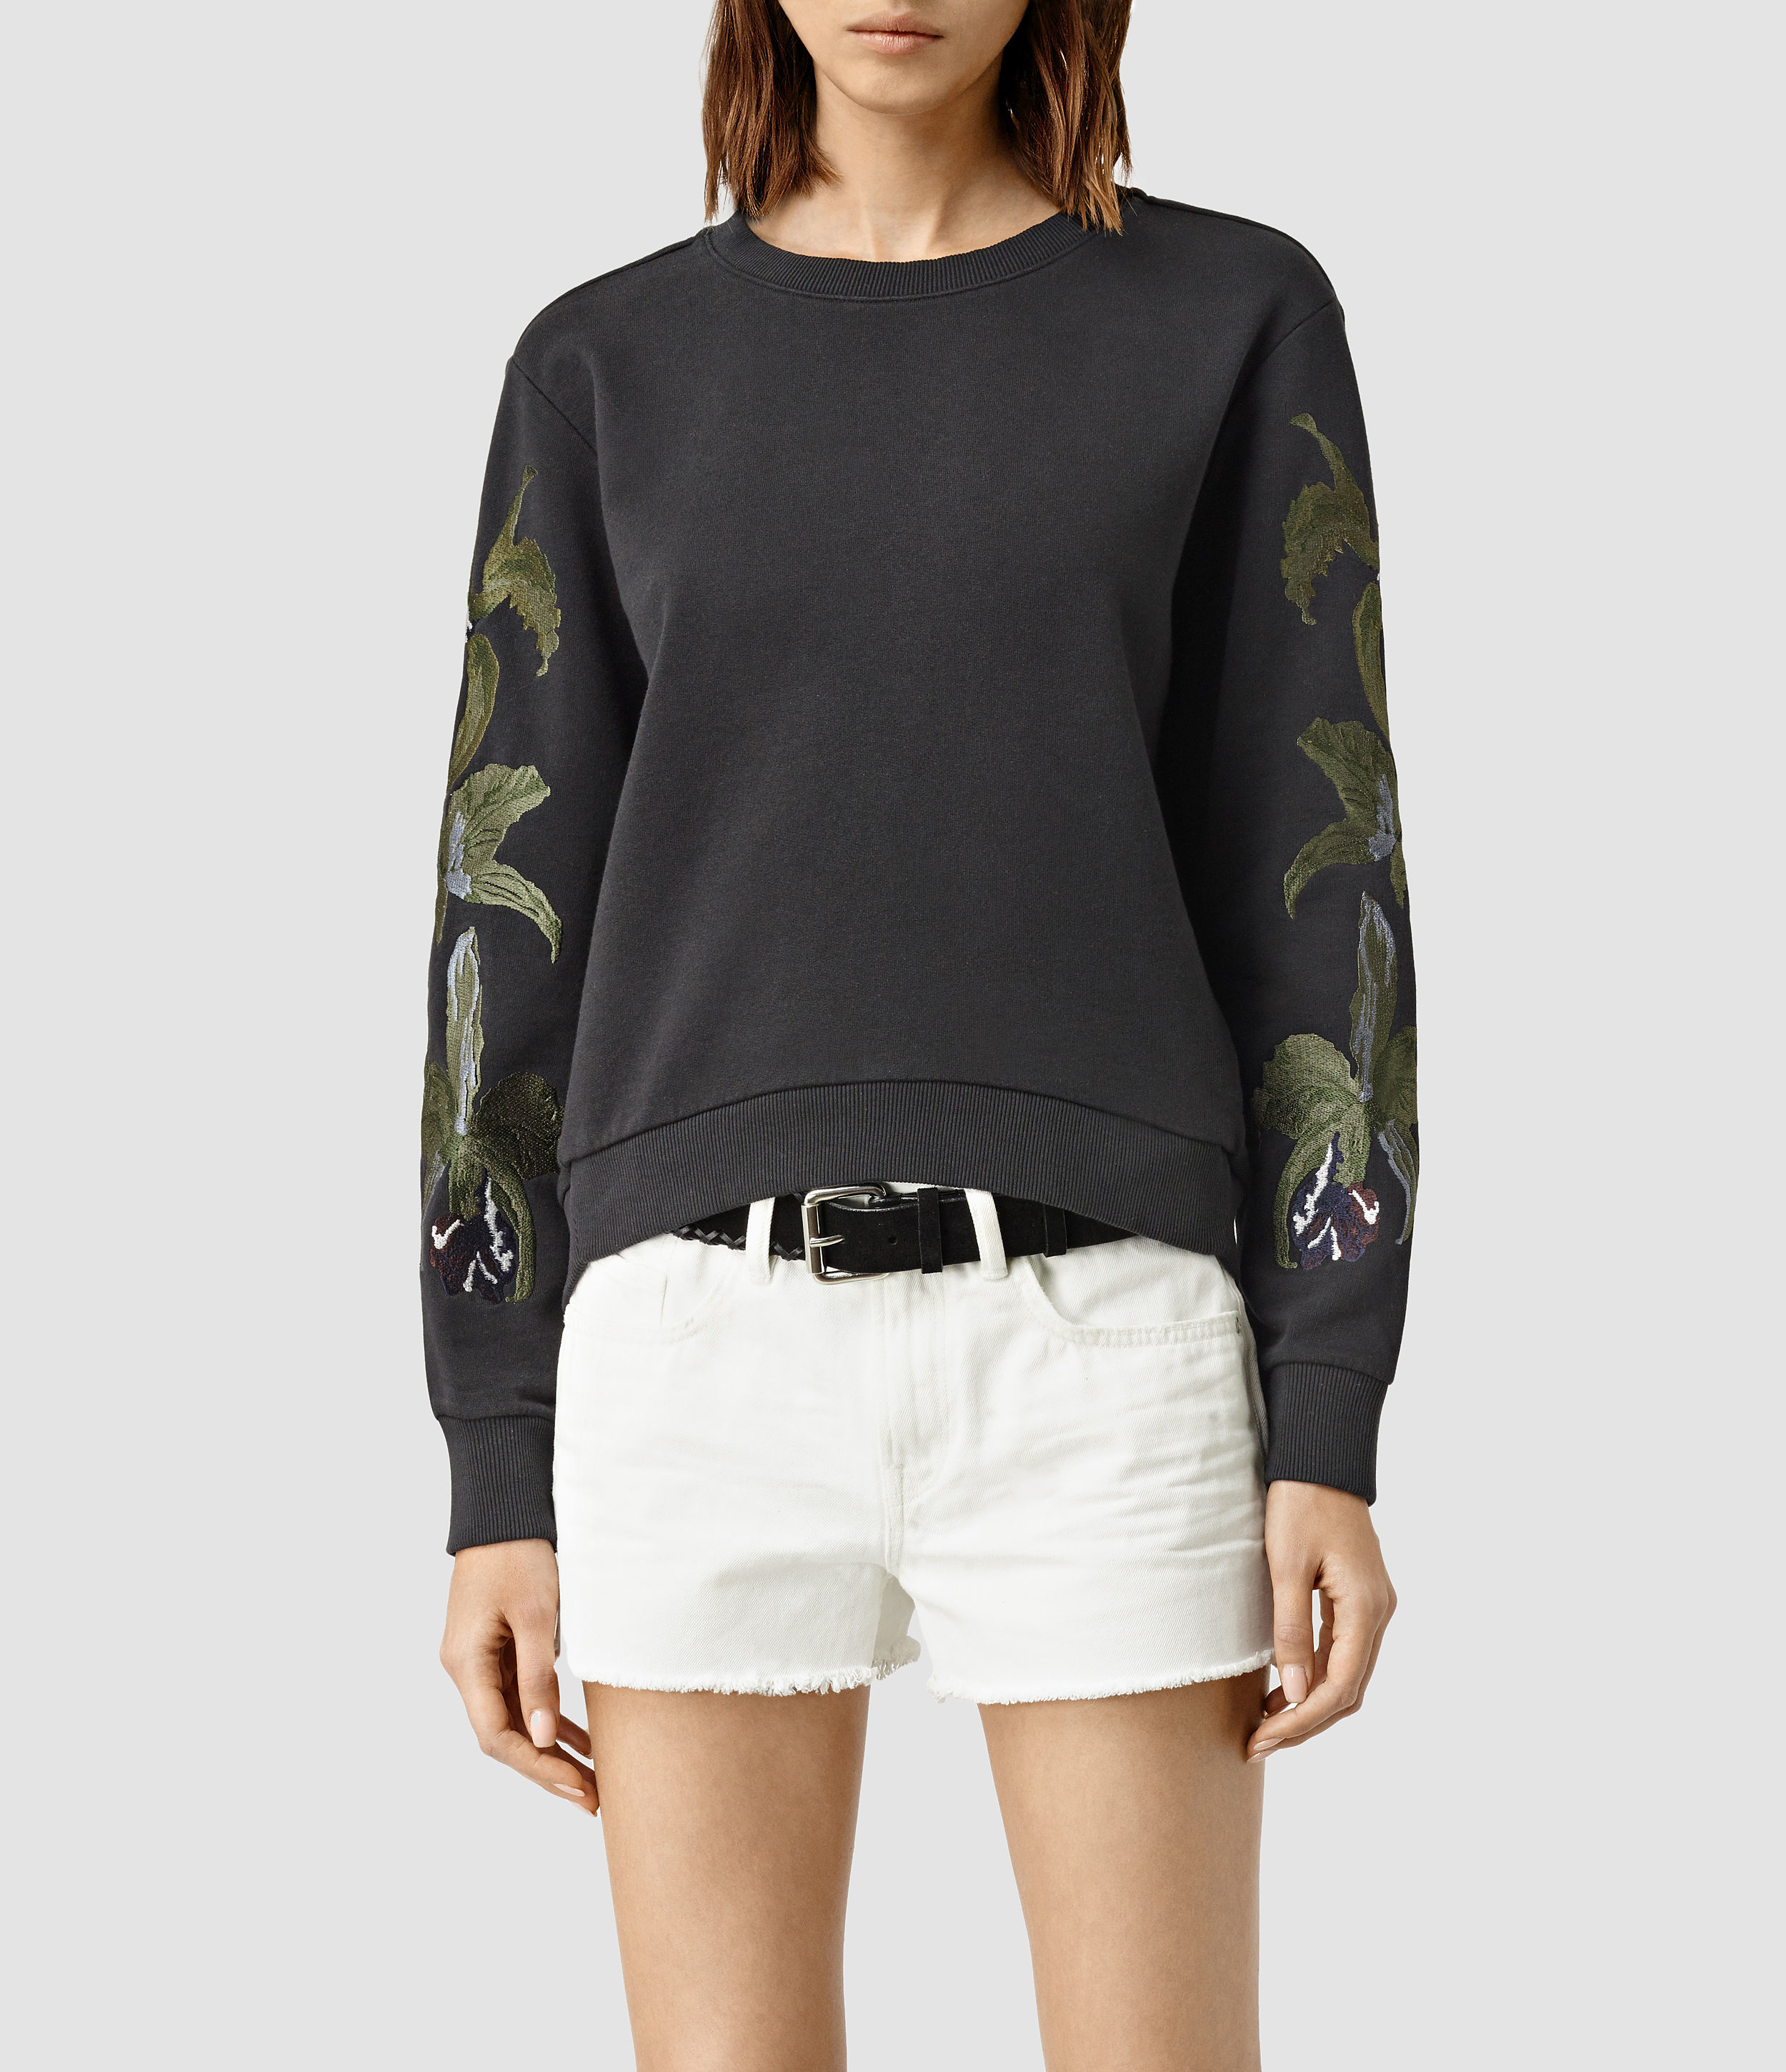 Allsaints Anya Embroidered Sweatshirt In Gray  Lyst